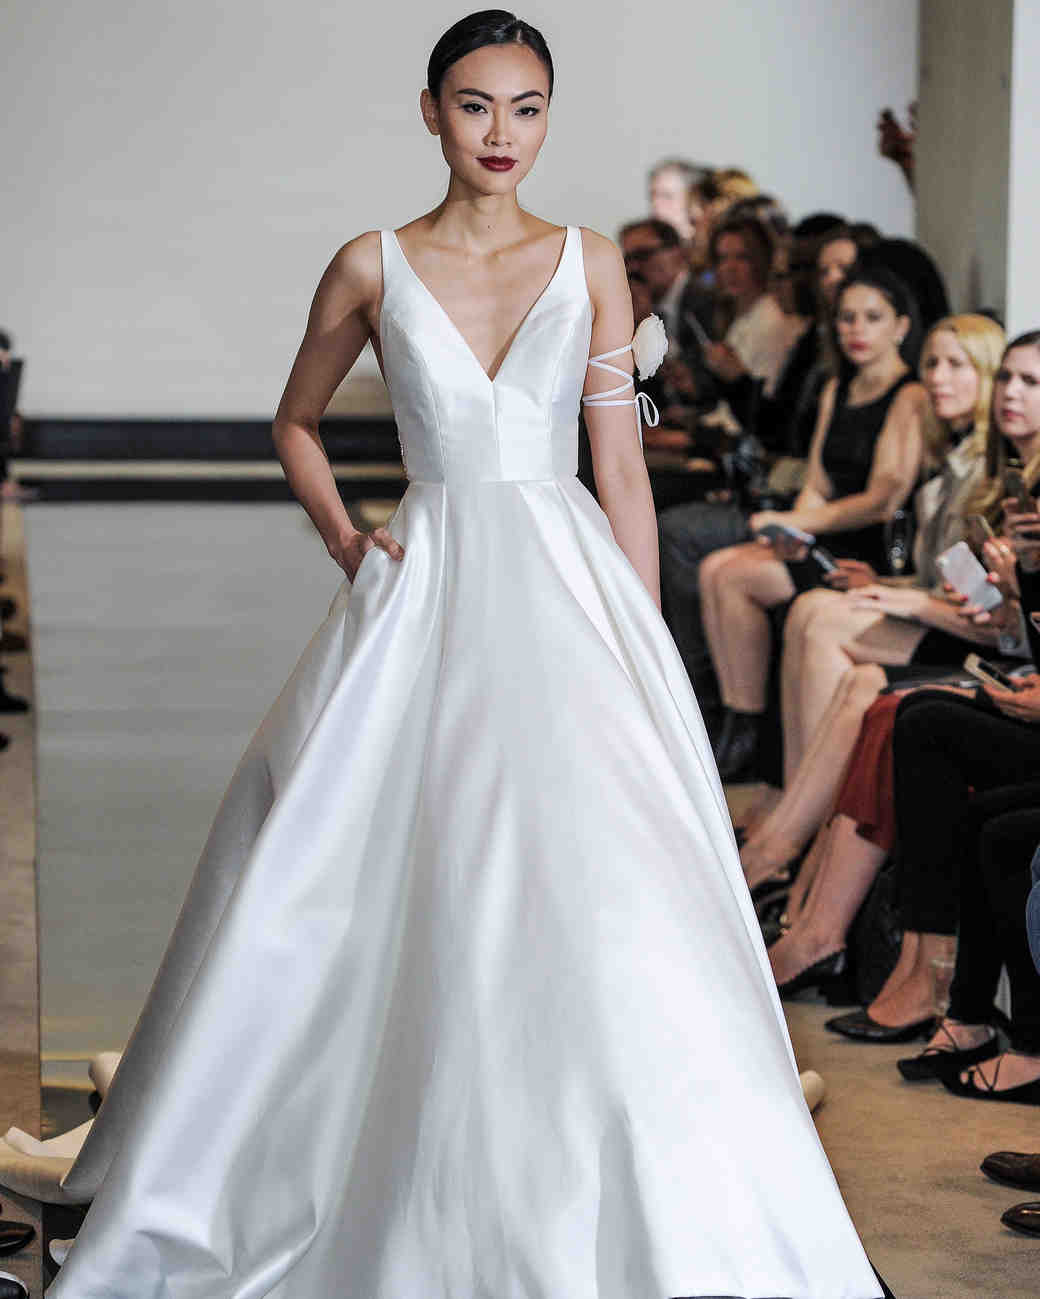 Simple Wedding Dresses That Are Just Plain Chic | Martha Stewart ...